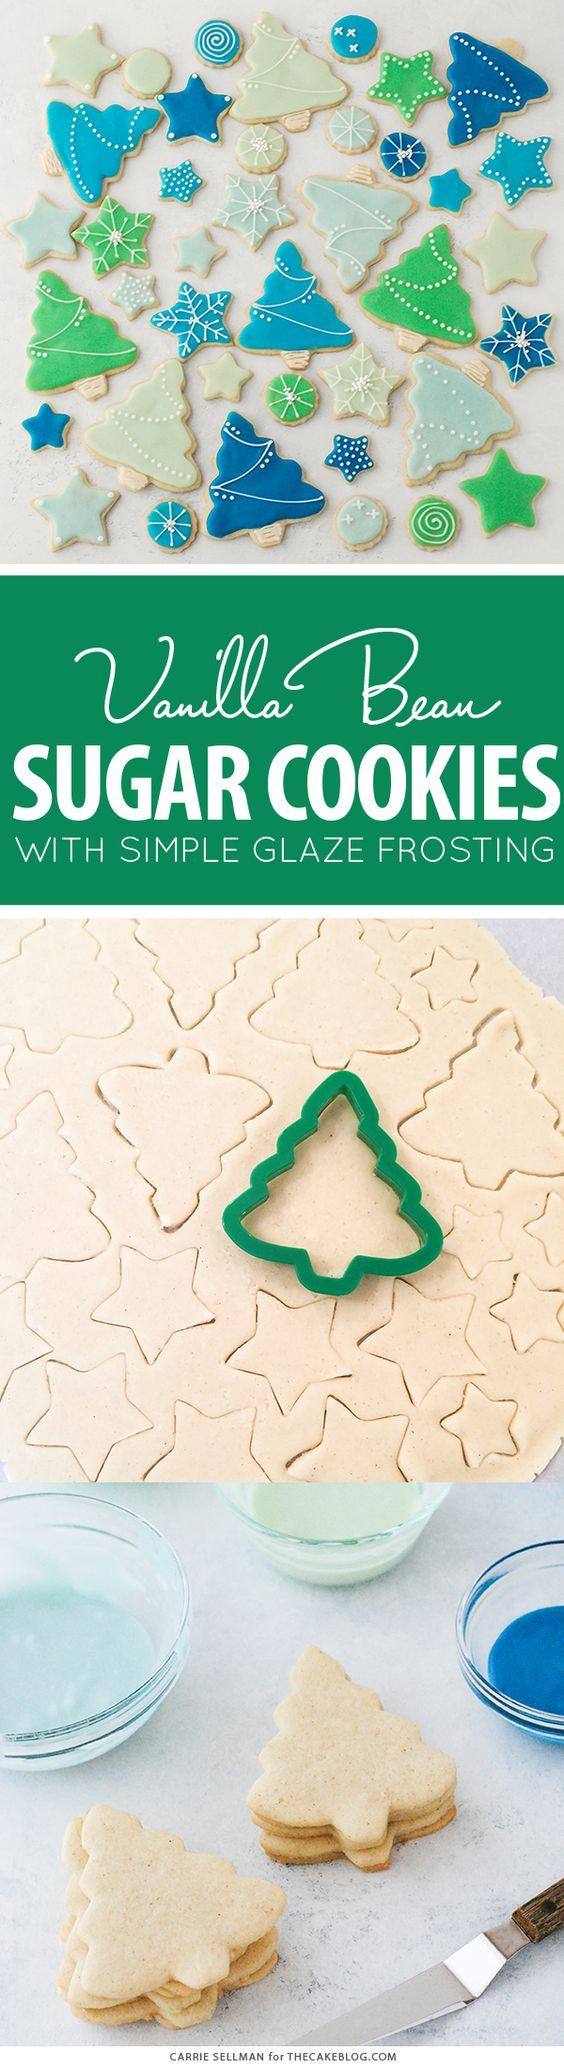 Decorated Sugar Cookies - vanilla bean sugar cookies with a simple glaze icing for easy yet thoughtful gift giving   by Carrie Sellman for The Cake Blog   AD @BobsRedMill #Bakesgiving